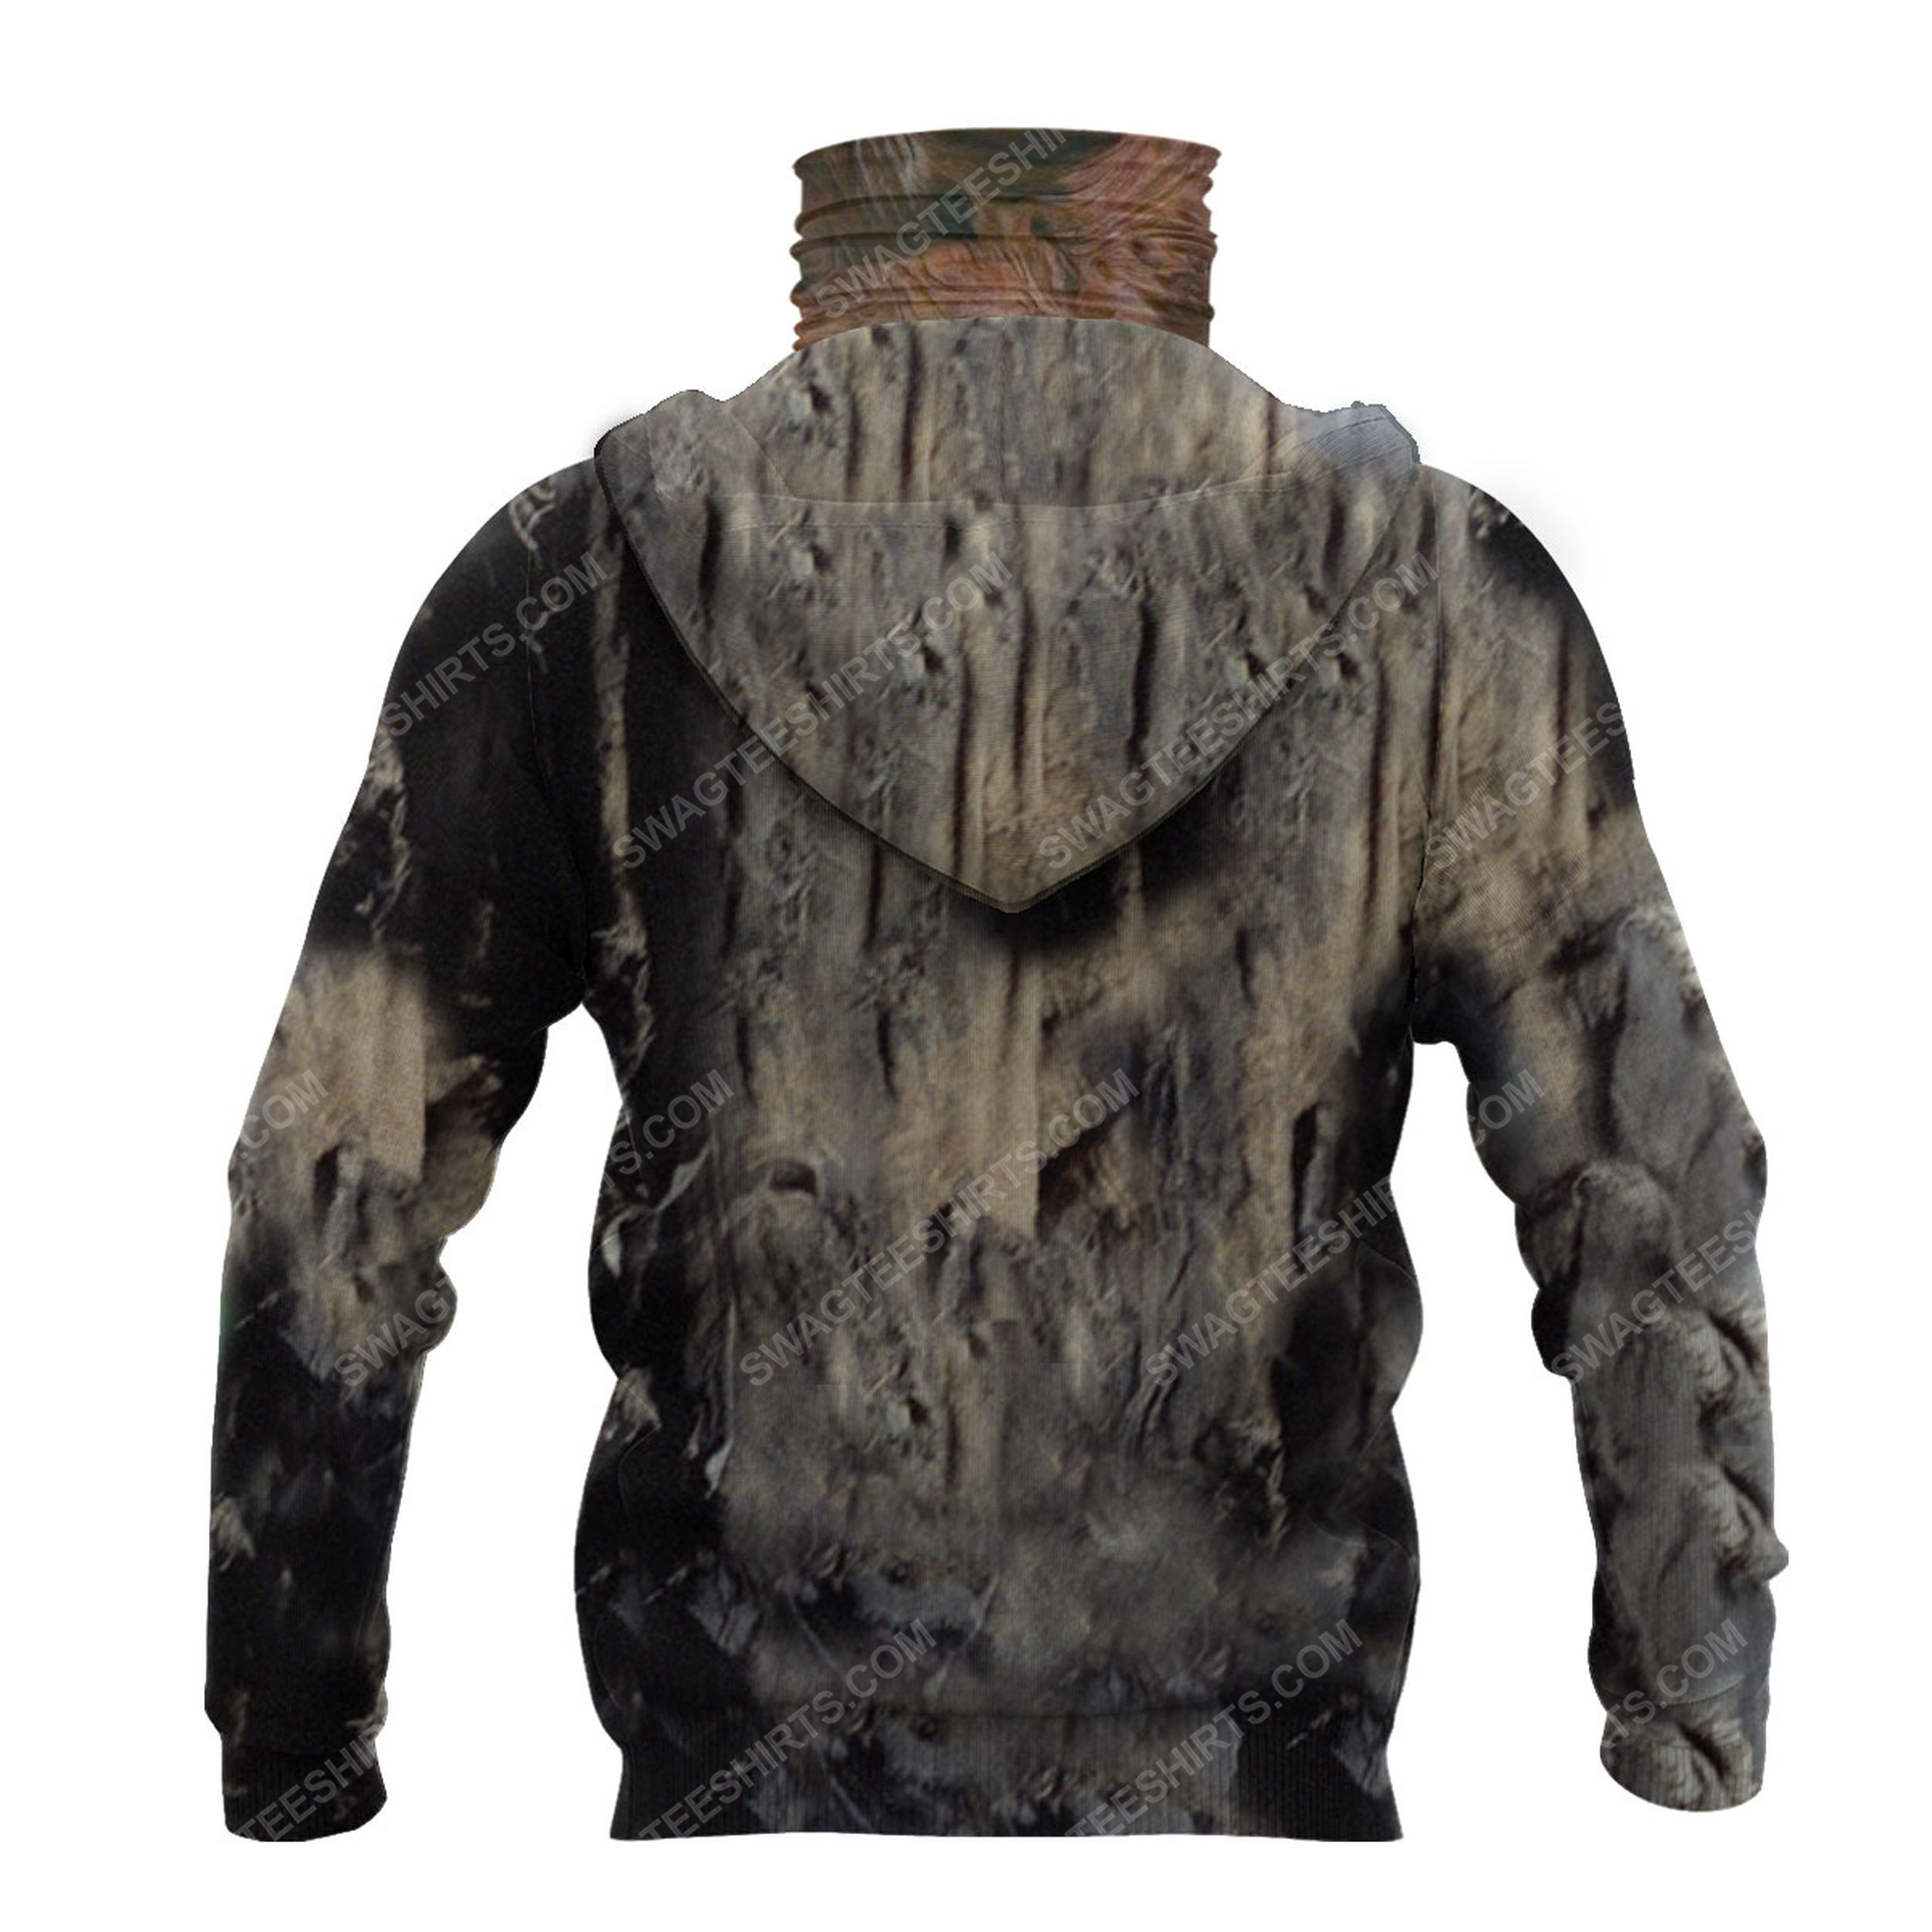 Friday the 13th jason voorhees for halloween full print mask hoodie 3(1)